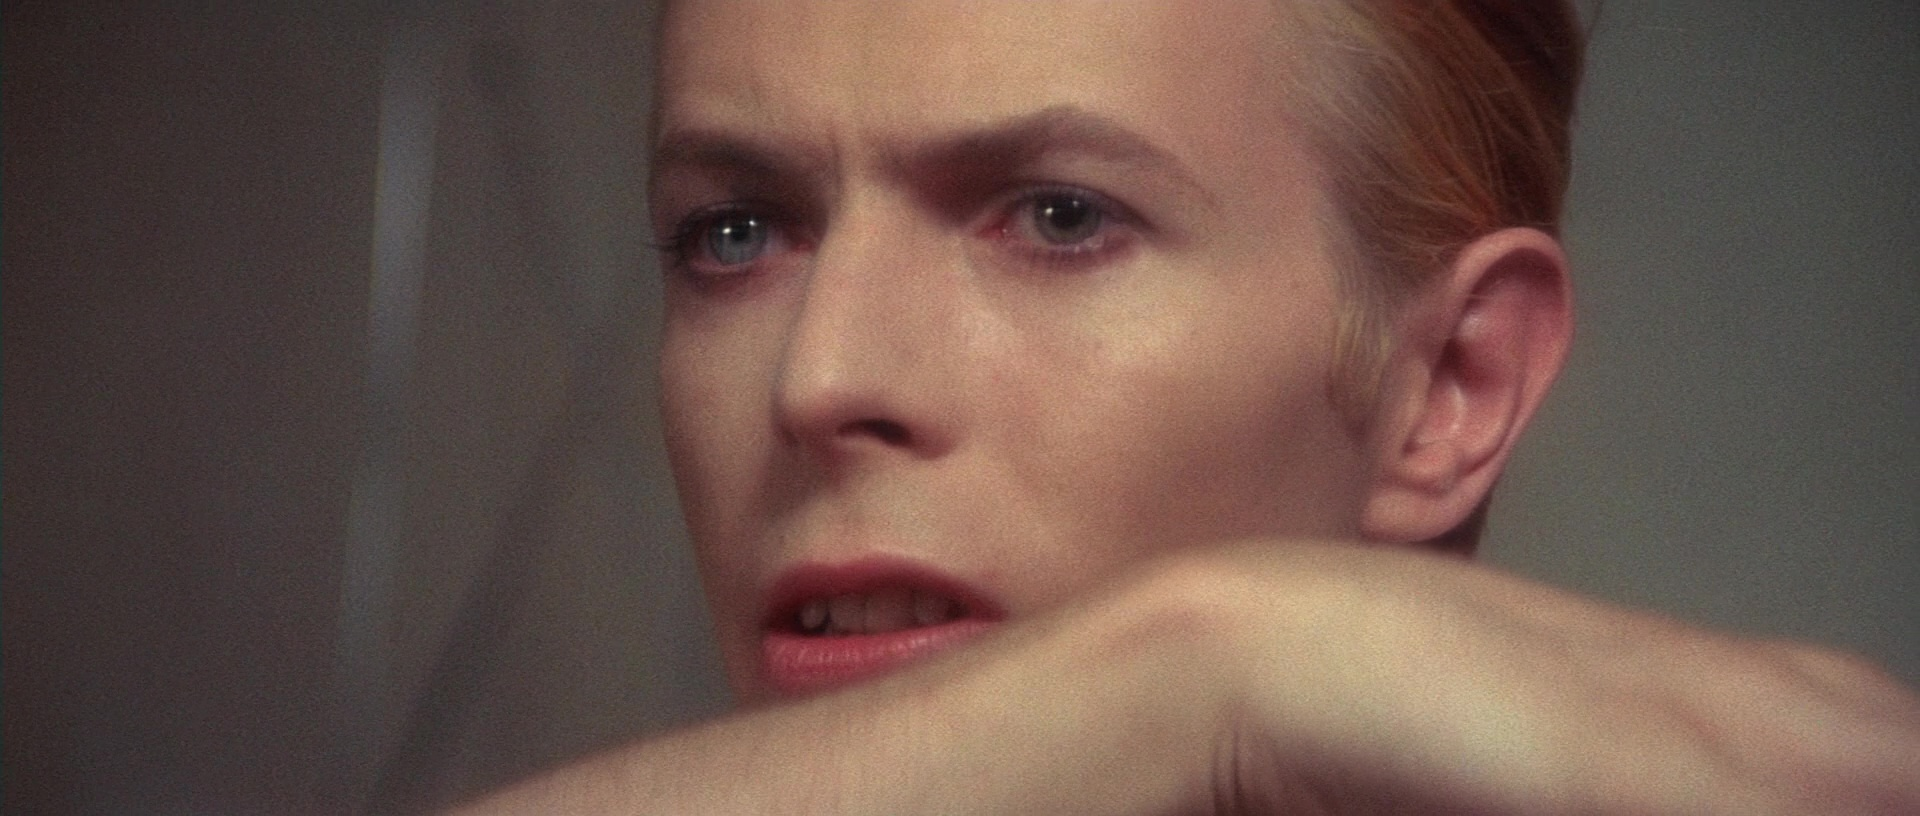 The Man Who Fell to Earth film still 8